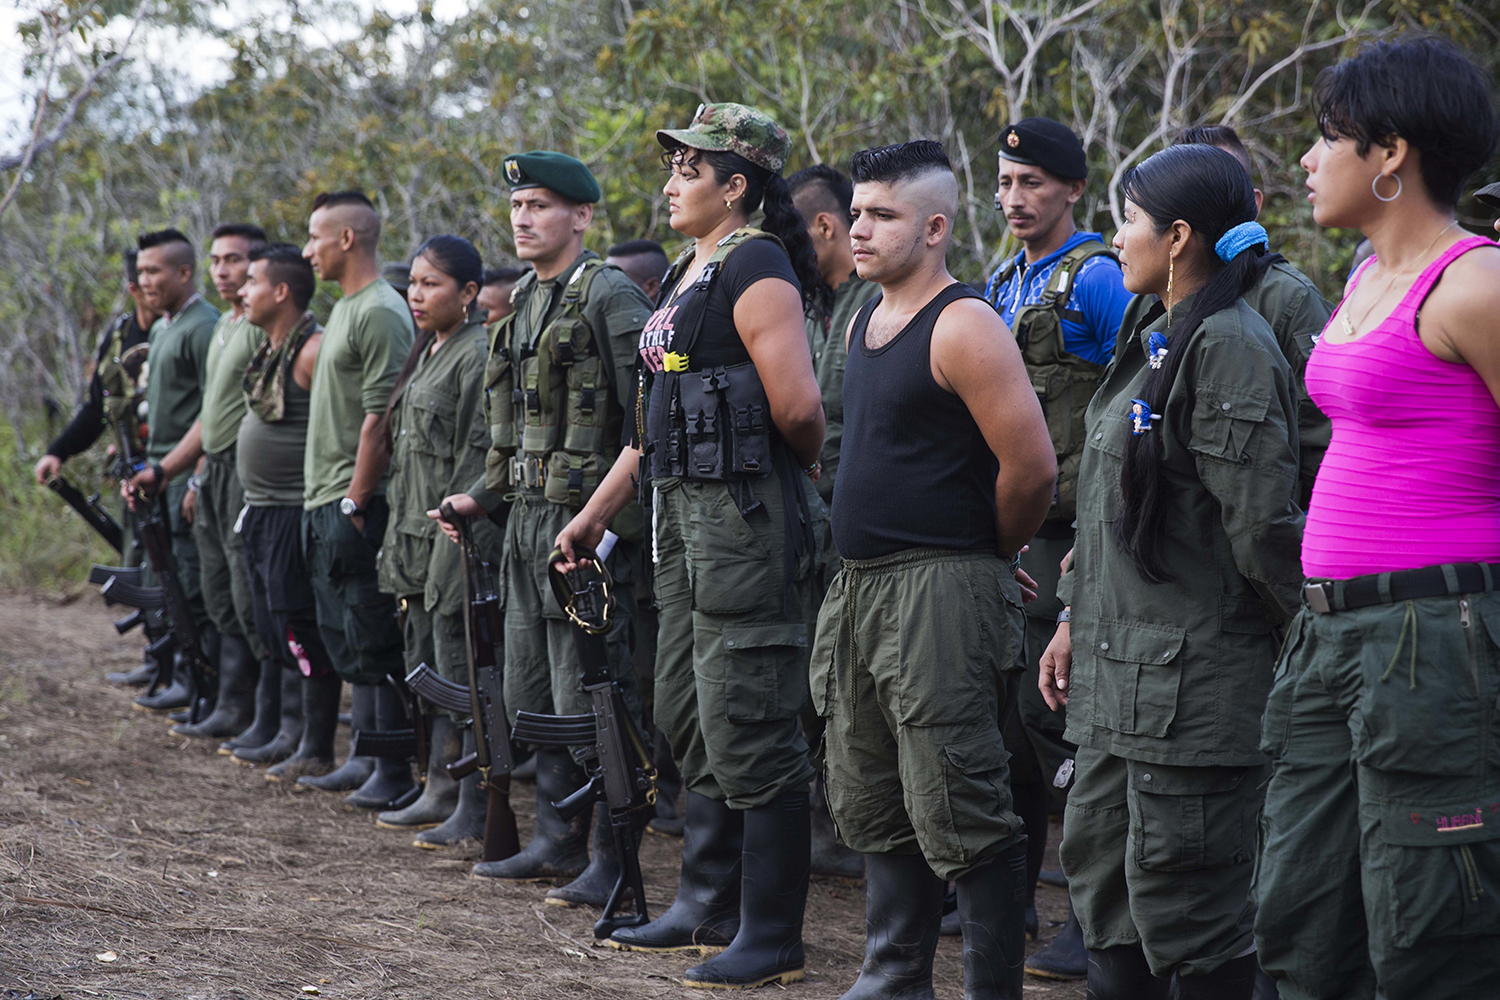 ap foto : ricardo mazalan : rebels of the revolutionary armed forces of colombia, farc, stand on formation at their camp next to the site where is the group is holding it's 10th conference in the yari plains, colombia, saturday, sept. 17, 2016. farc leaders and delegates are gathering to debate and vote on the accord reached last month with the colombian government to end five decades of war. (ap photo/ricardo mazalan) colombia rebel congres automatarkiverad